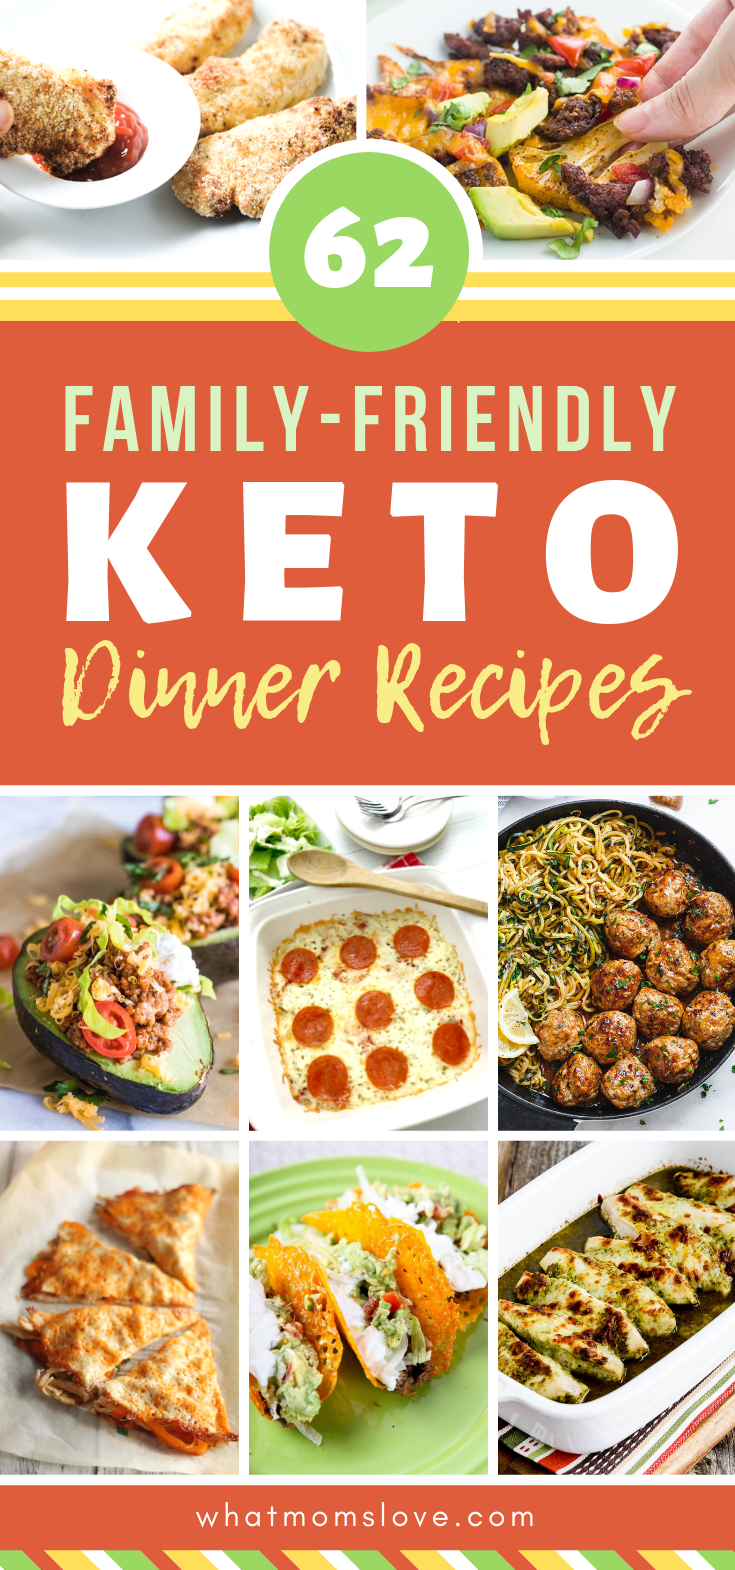 60+ Kid-Friendly Keto Dinner Recipes Your Entire Family Will Eat